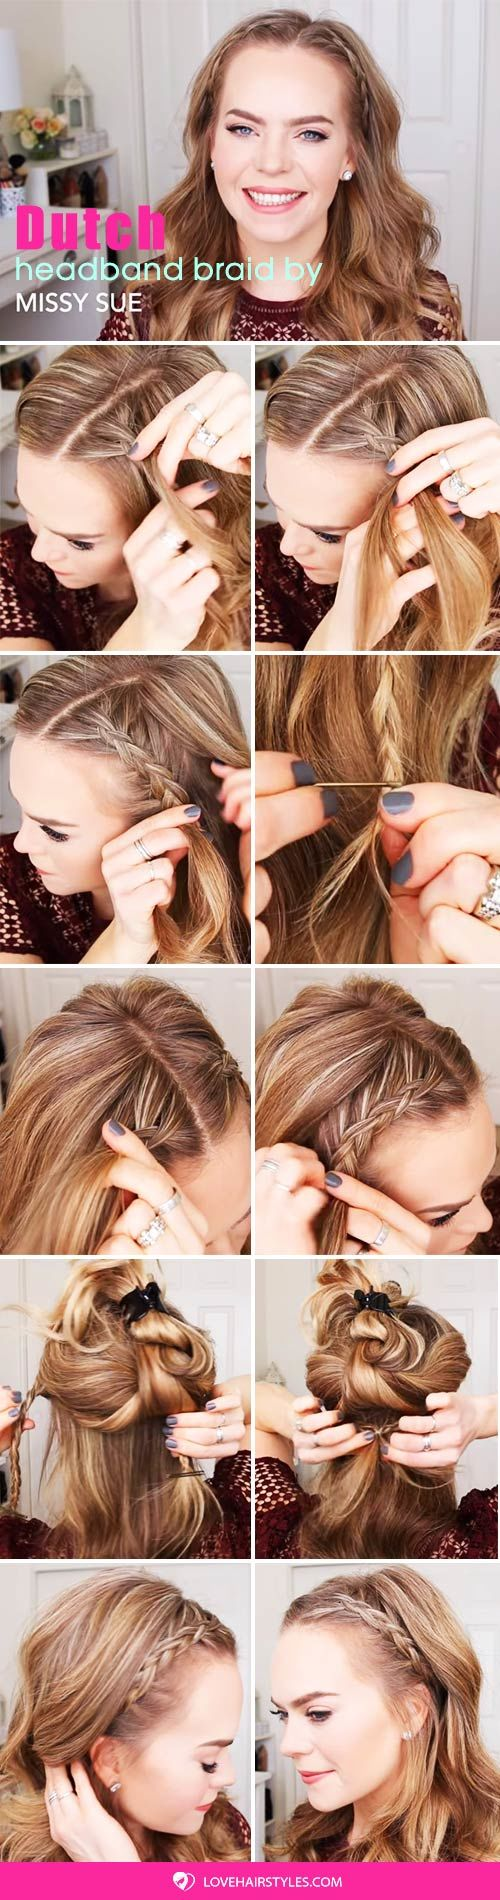 Dutch Braided Headband #braids #hairtutorials